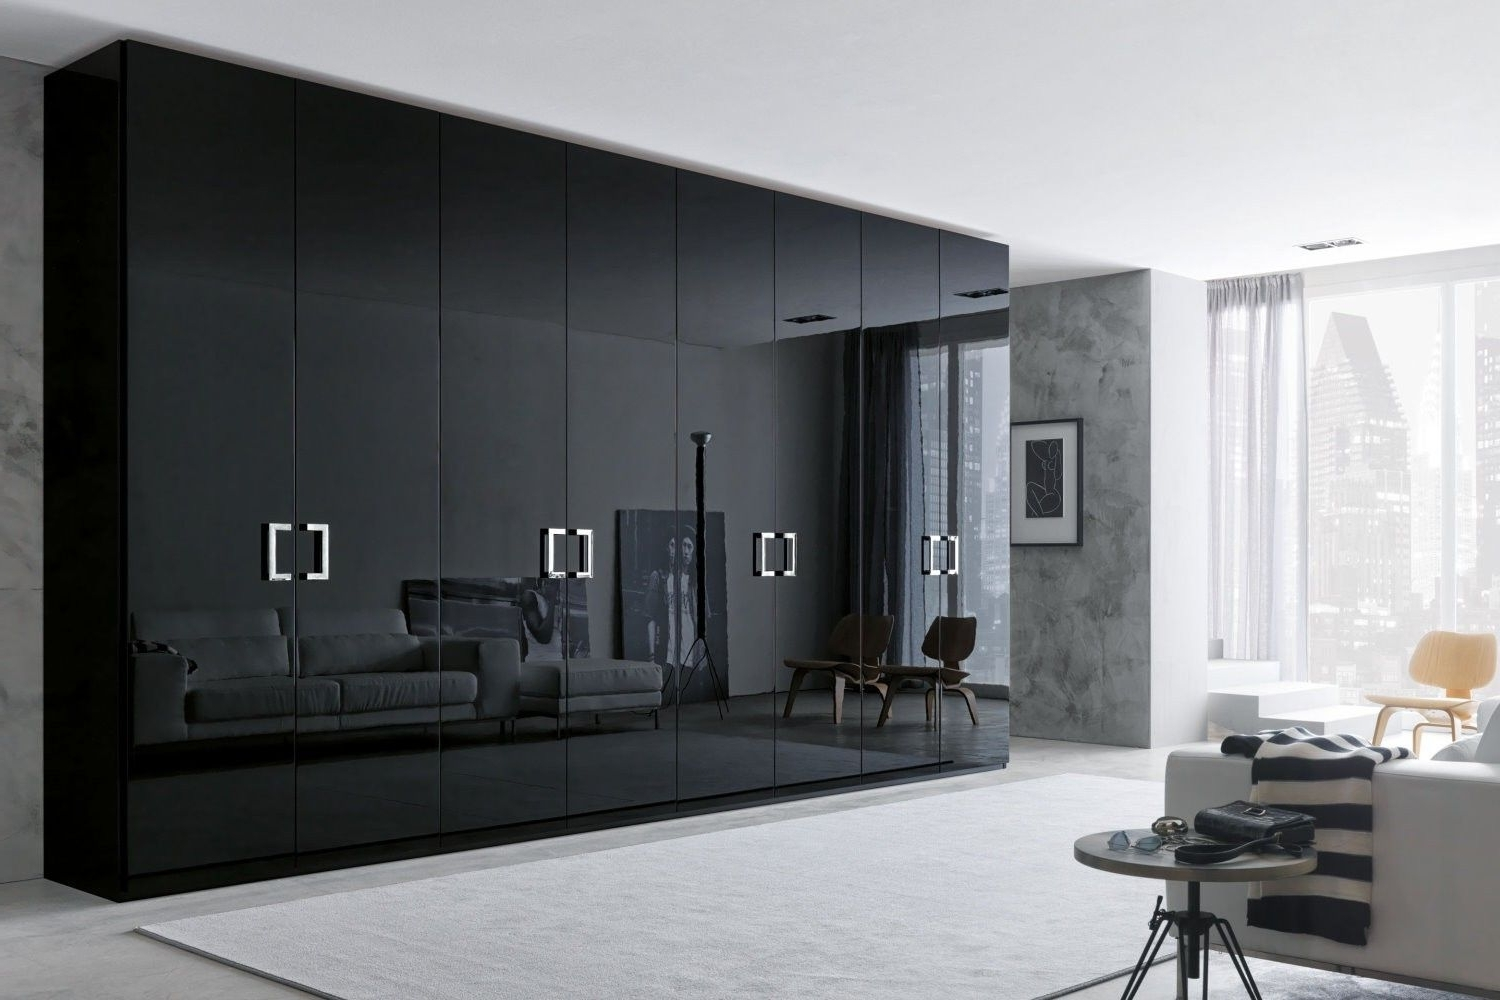 Wardrobe Design, Gray Pertaining To Large Black Wardrobes (View 13 of 15)